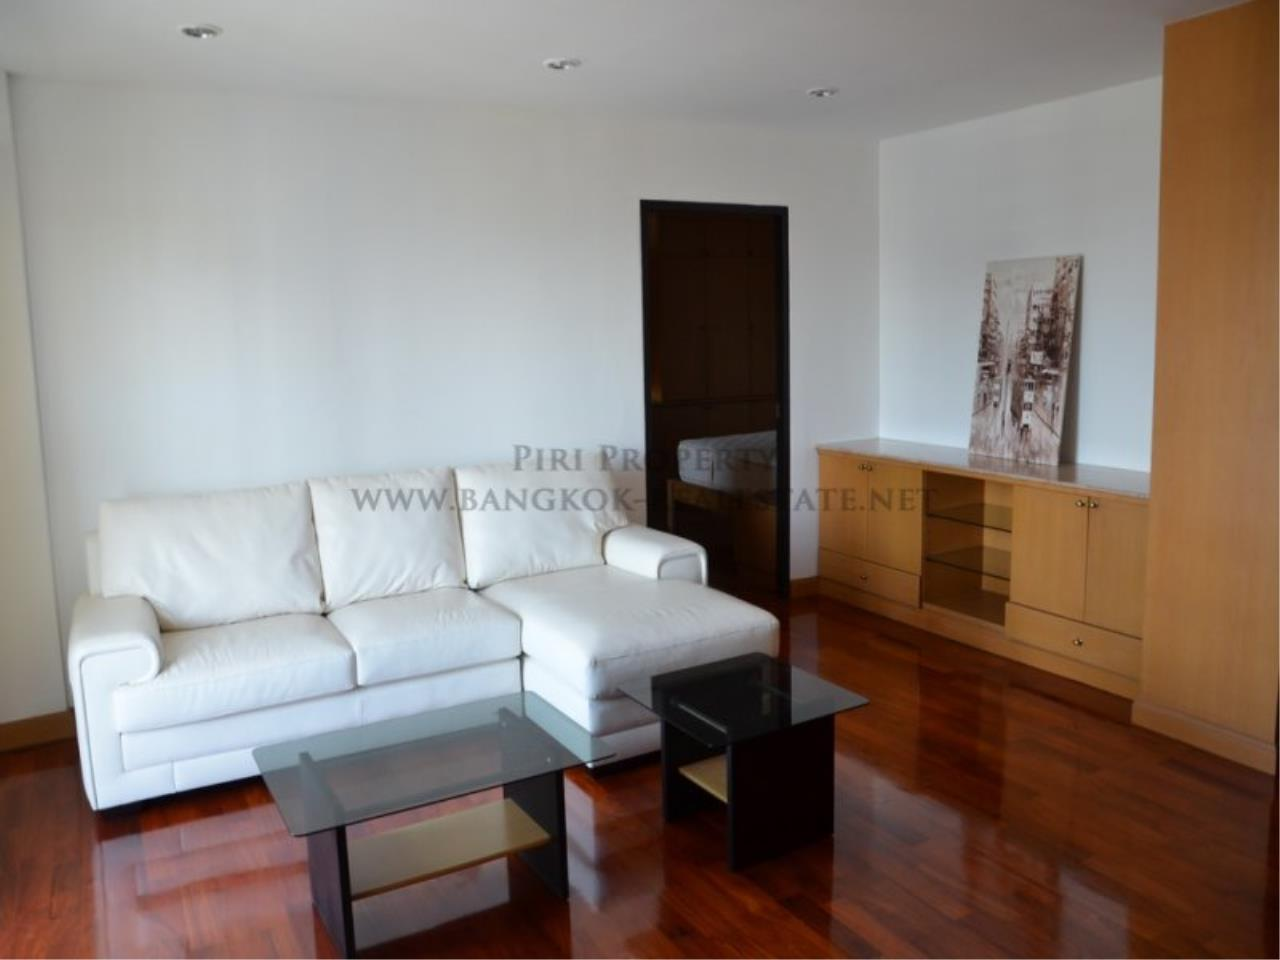 Piri Property Agency's Spacious 3 Bedroom Condo in Ekkamai - 128 SQM for 50K - Top View Tower - 30th Floor 1